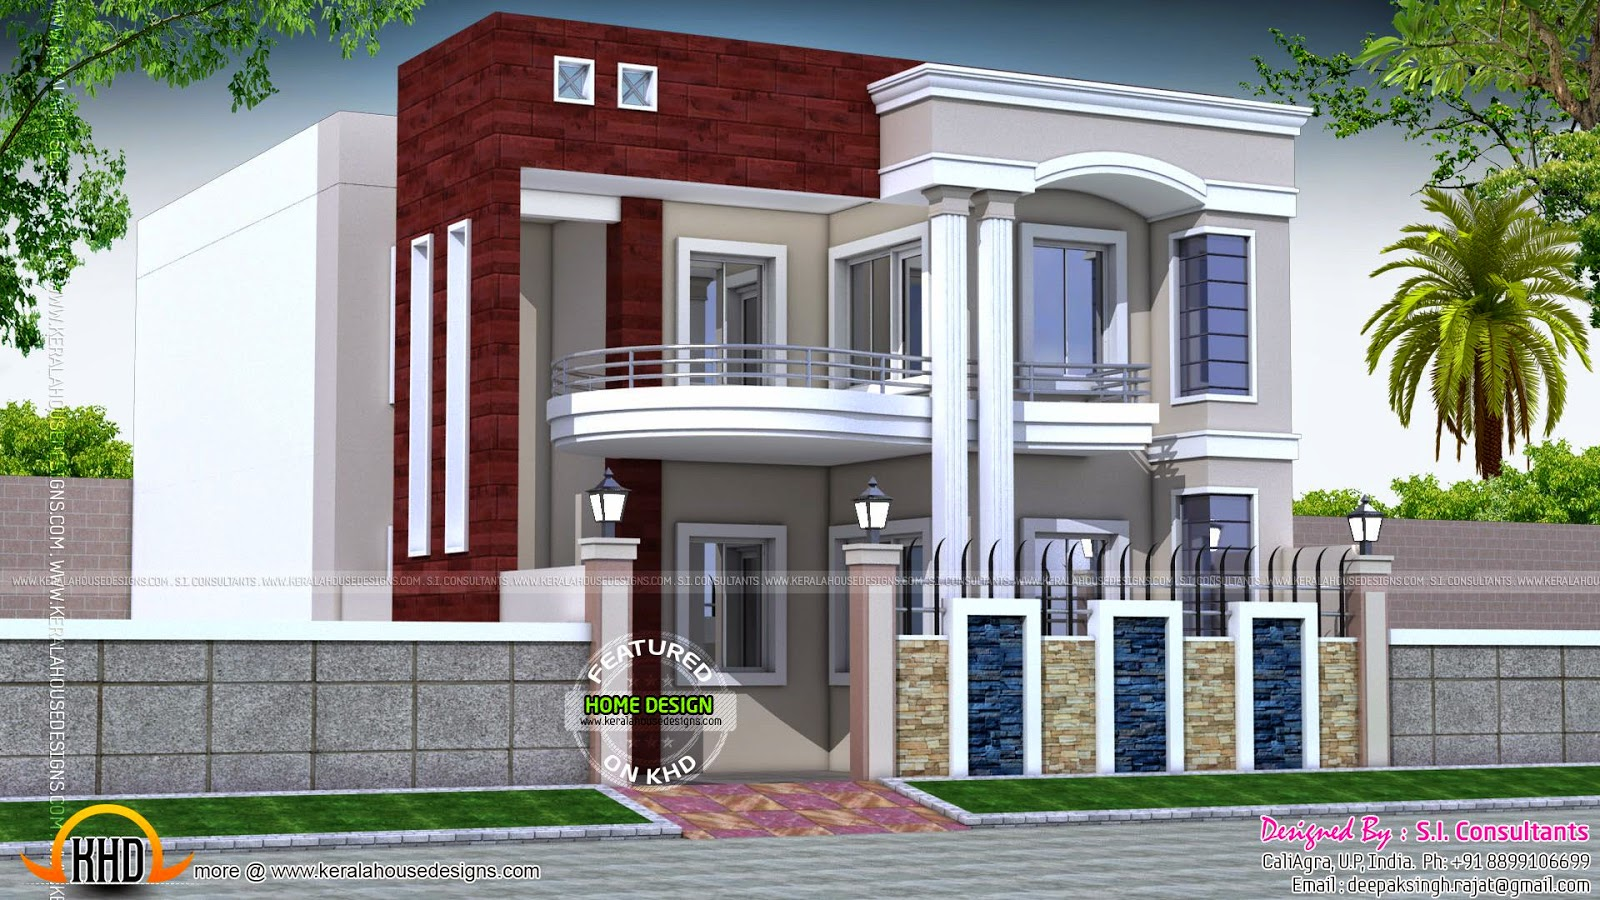 House design in north india kerala home design and floor for House design indian style plan and elevation